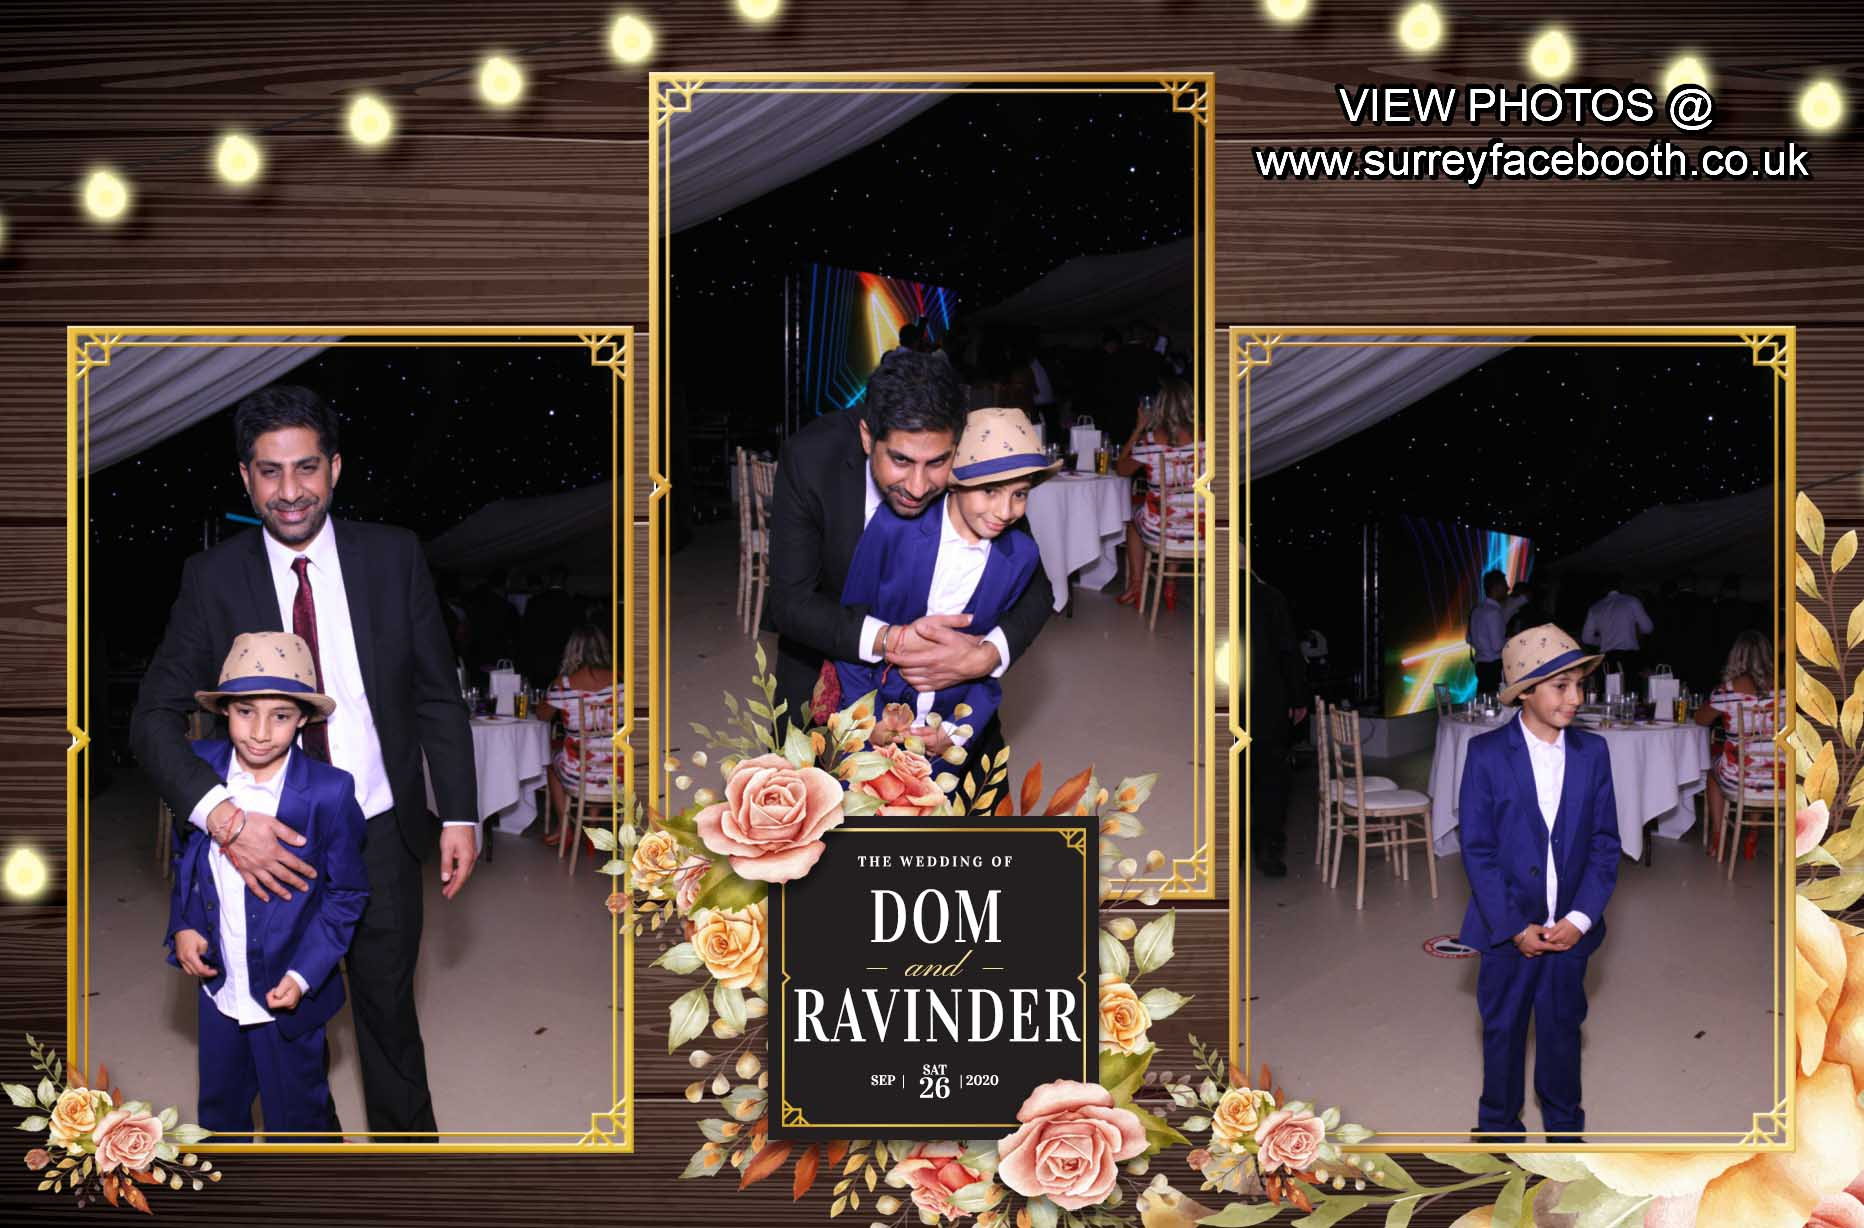 Ravinder & Dominic's Wedding | View more photos from the event at galleries.surreyfacebooth.co.uk/u/Surrey-FaceBooth/Ravinder-Dominics-Wedding